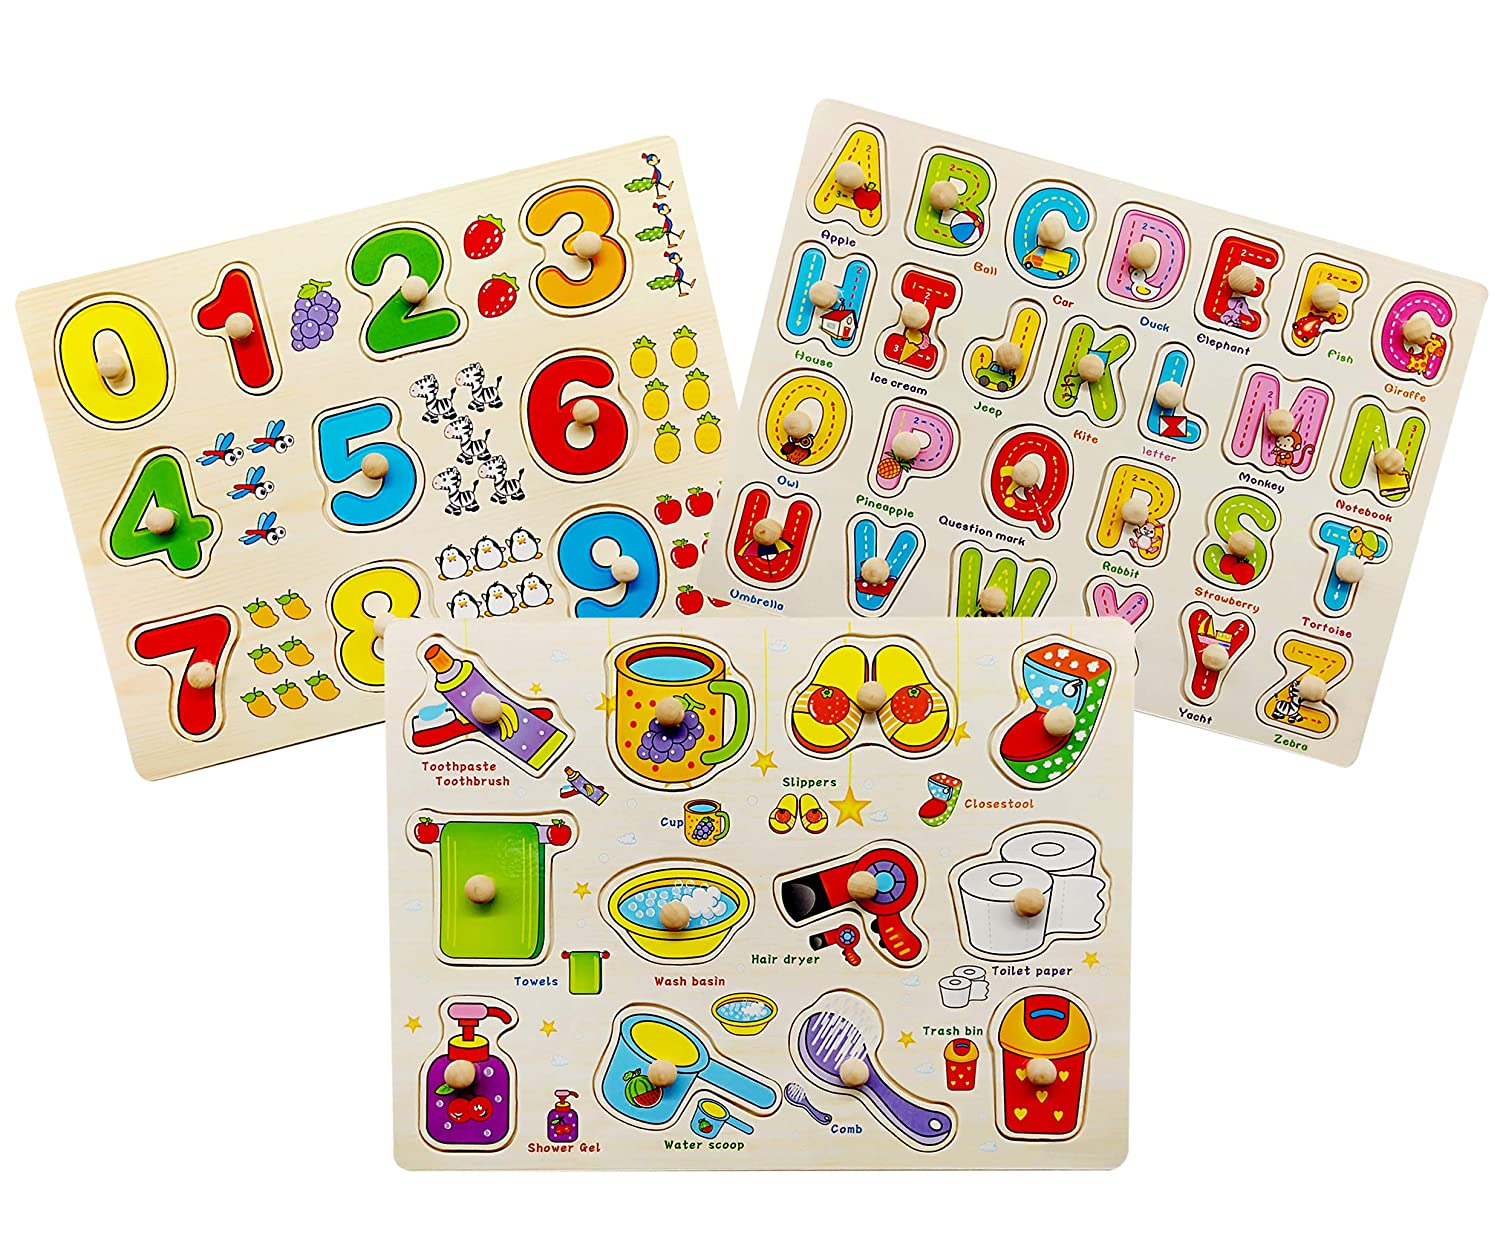 Toddler Puzzles Wooden Peg Puzzles for Toddlers 2 3 4 5 Years Old (Set of 3)